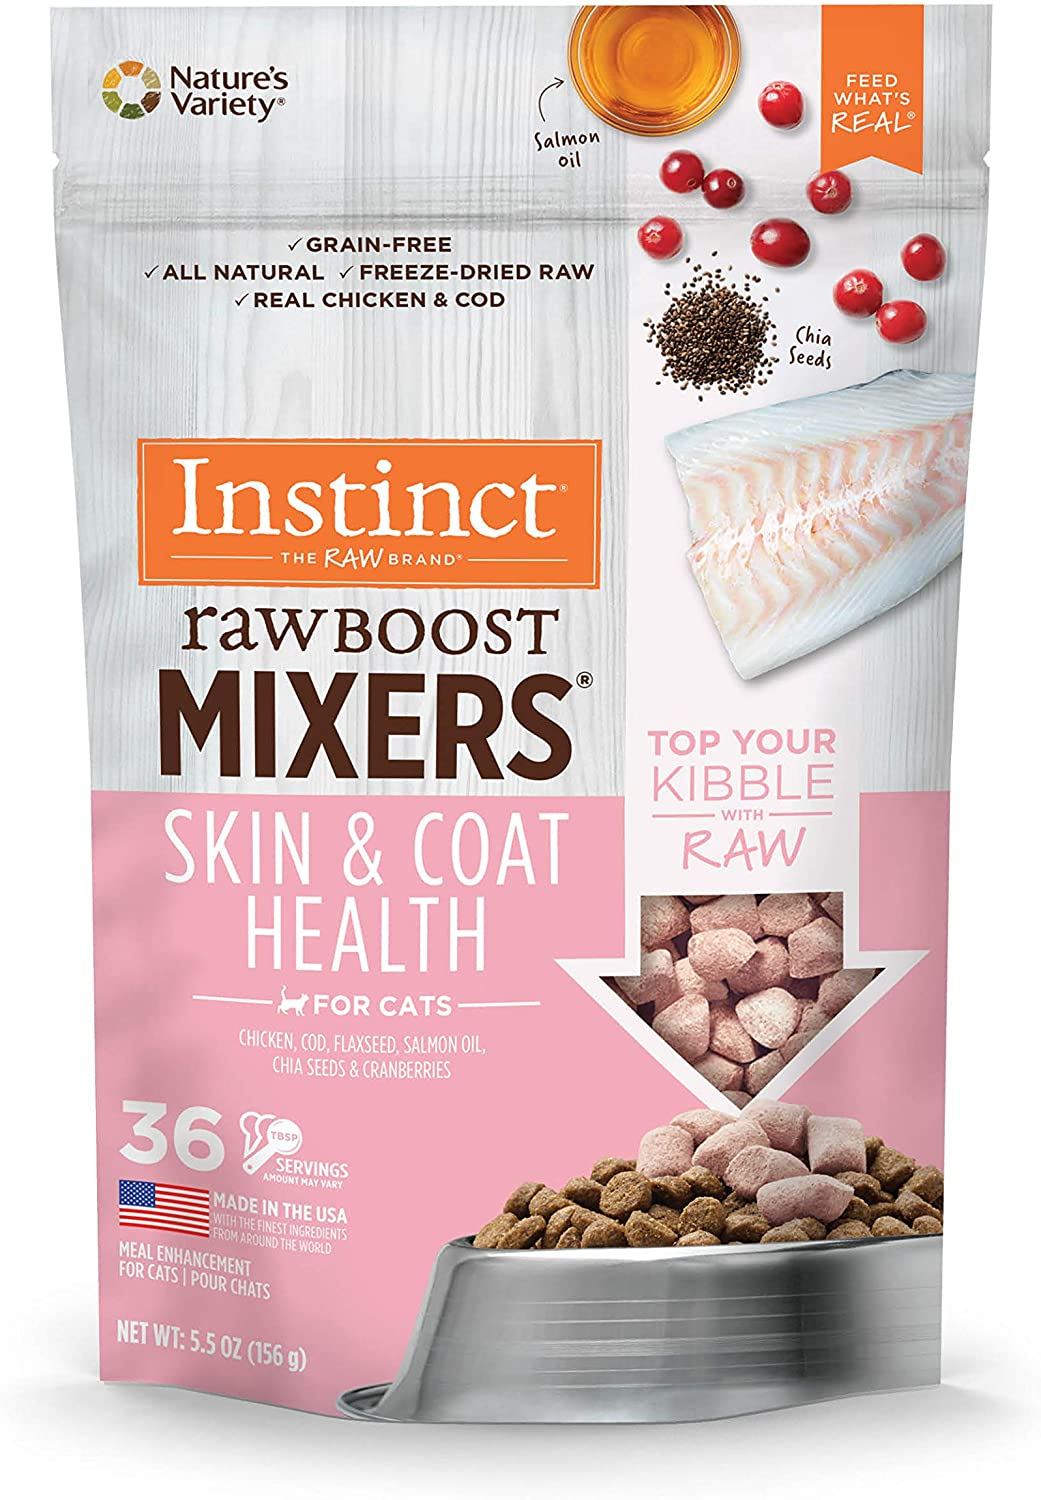 Instinct Freeze Dried Raw Boost Mixers Grain Free Skin & Coat Health Recipe All Natural Cat Food Topper by Nature's Variety, 5.5 oz. Bag